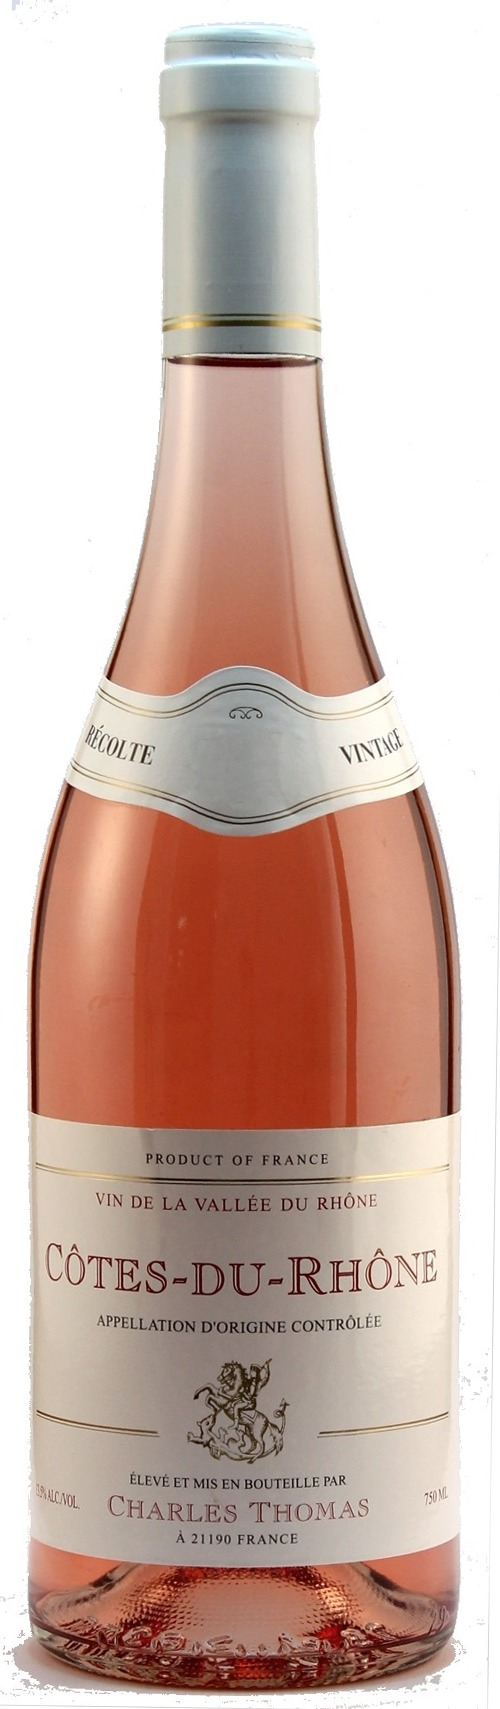 Charles Thomas Cotes Du Rhone Rose 2019 Timeless Wines Order Wine Online From The United States California Wines French Wines Spanish Wines Chardonnay Port Cabernet Savignon